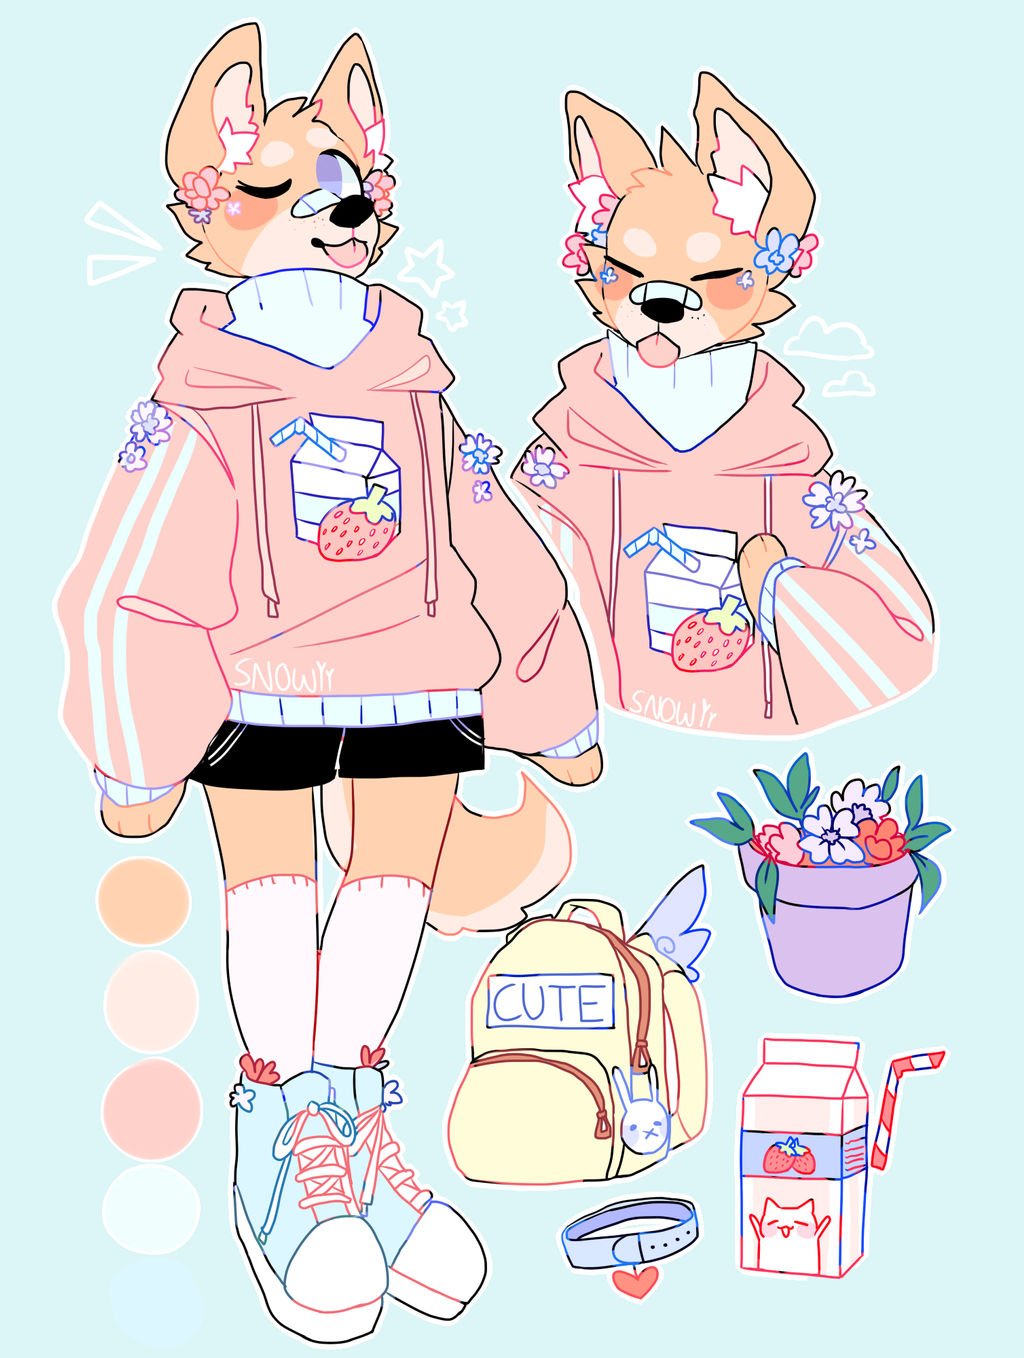 [CD] Aesthetic Shibb,,y'all,, stop lookin at this- by Snowiitea